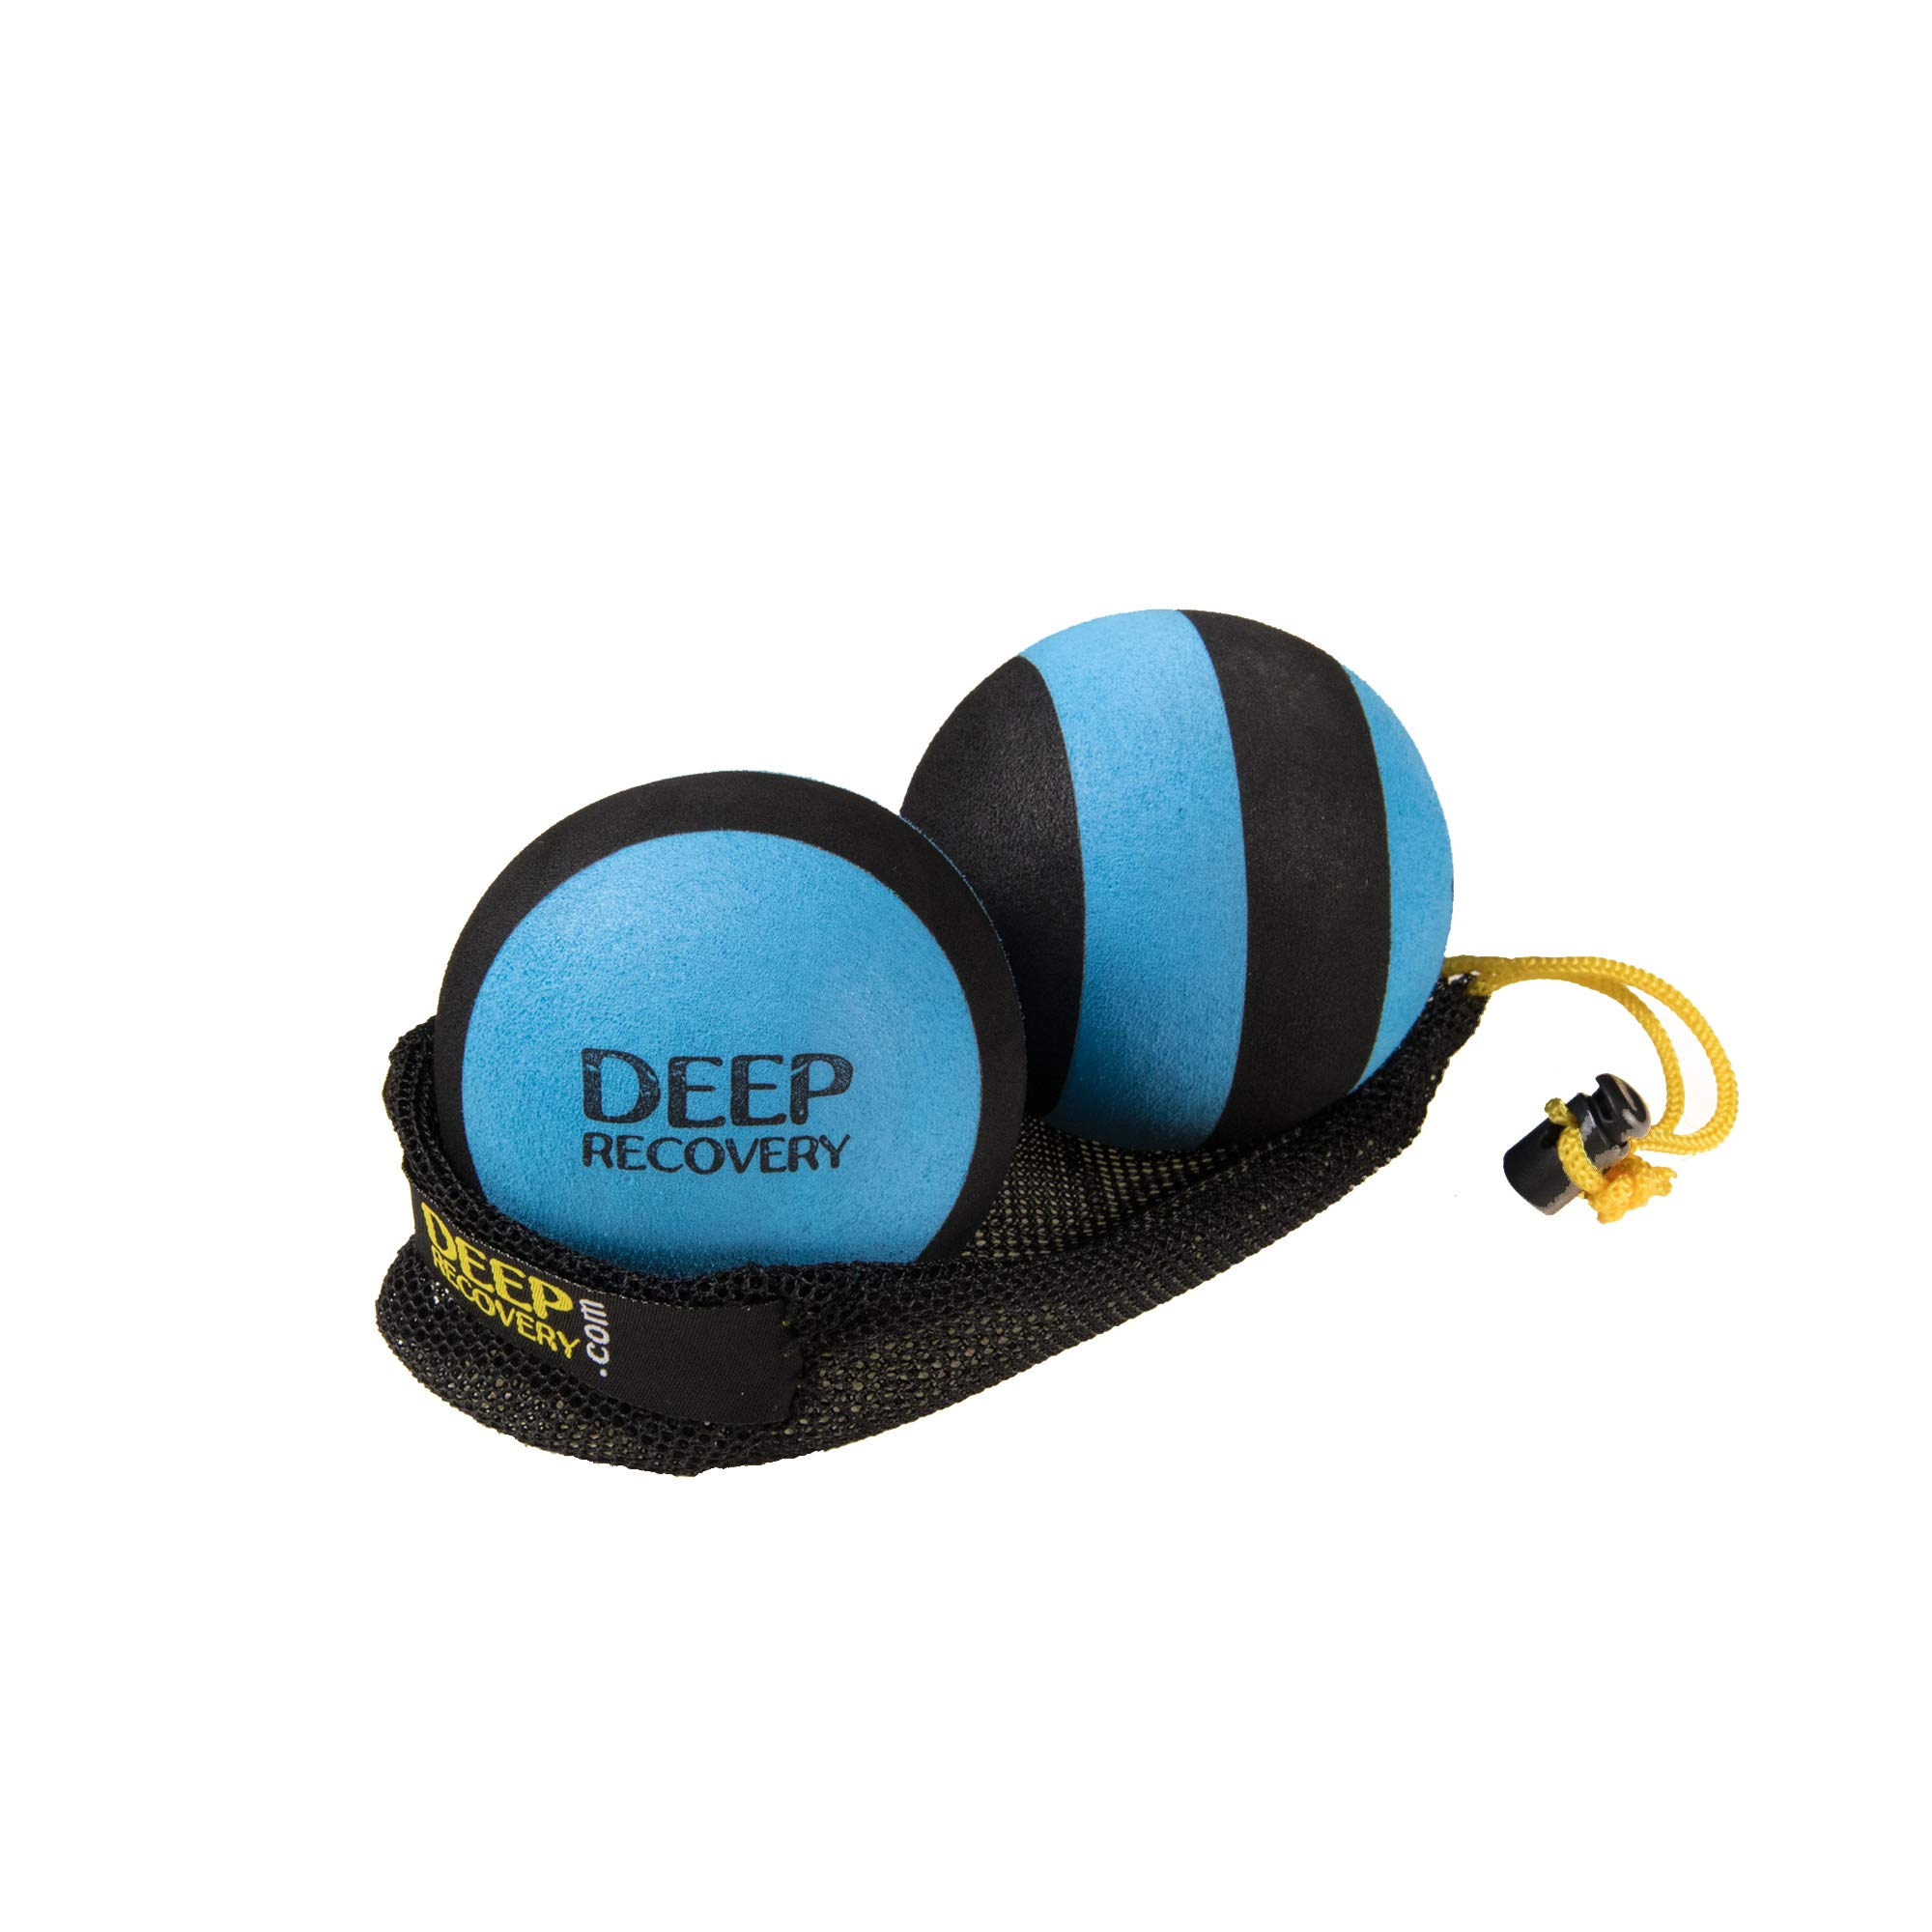 Soft Yoga & Deep Tissue Massage Balls for Myofascial Release, Mobility & Physical Therapy